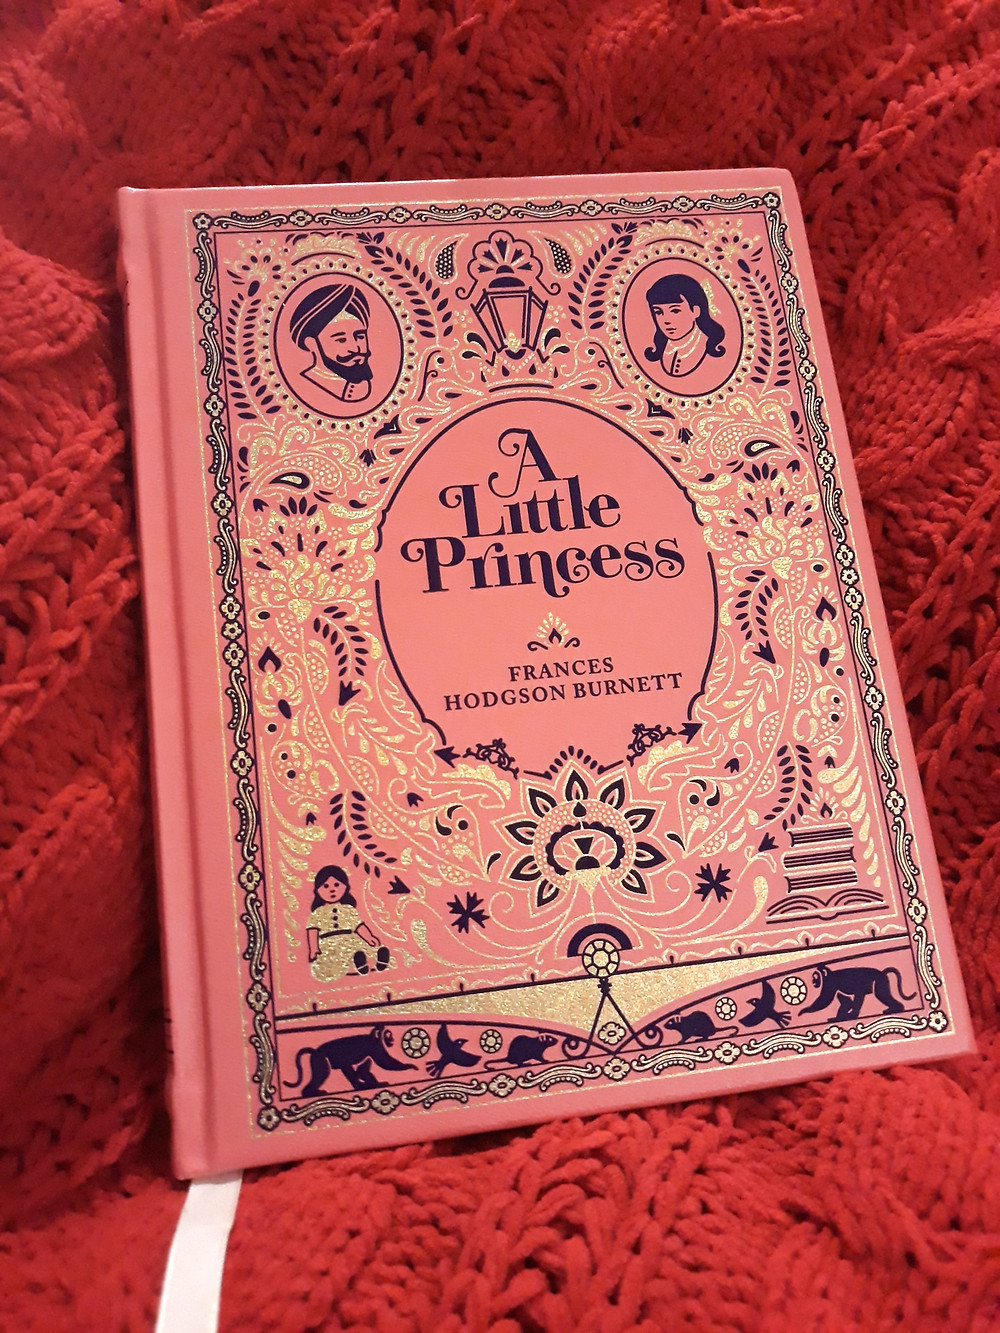 A hardcover copy of A Little Princess that is pink with black and gold foil embossing.